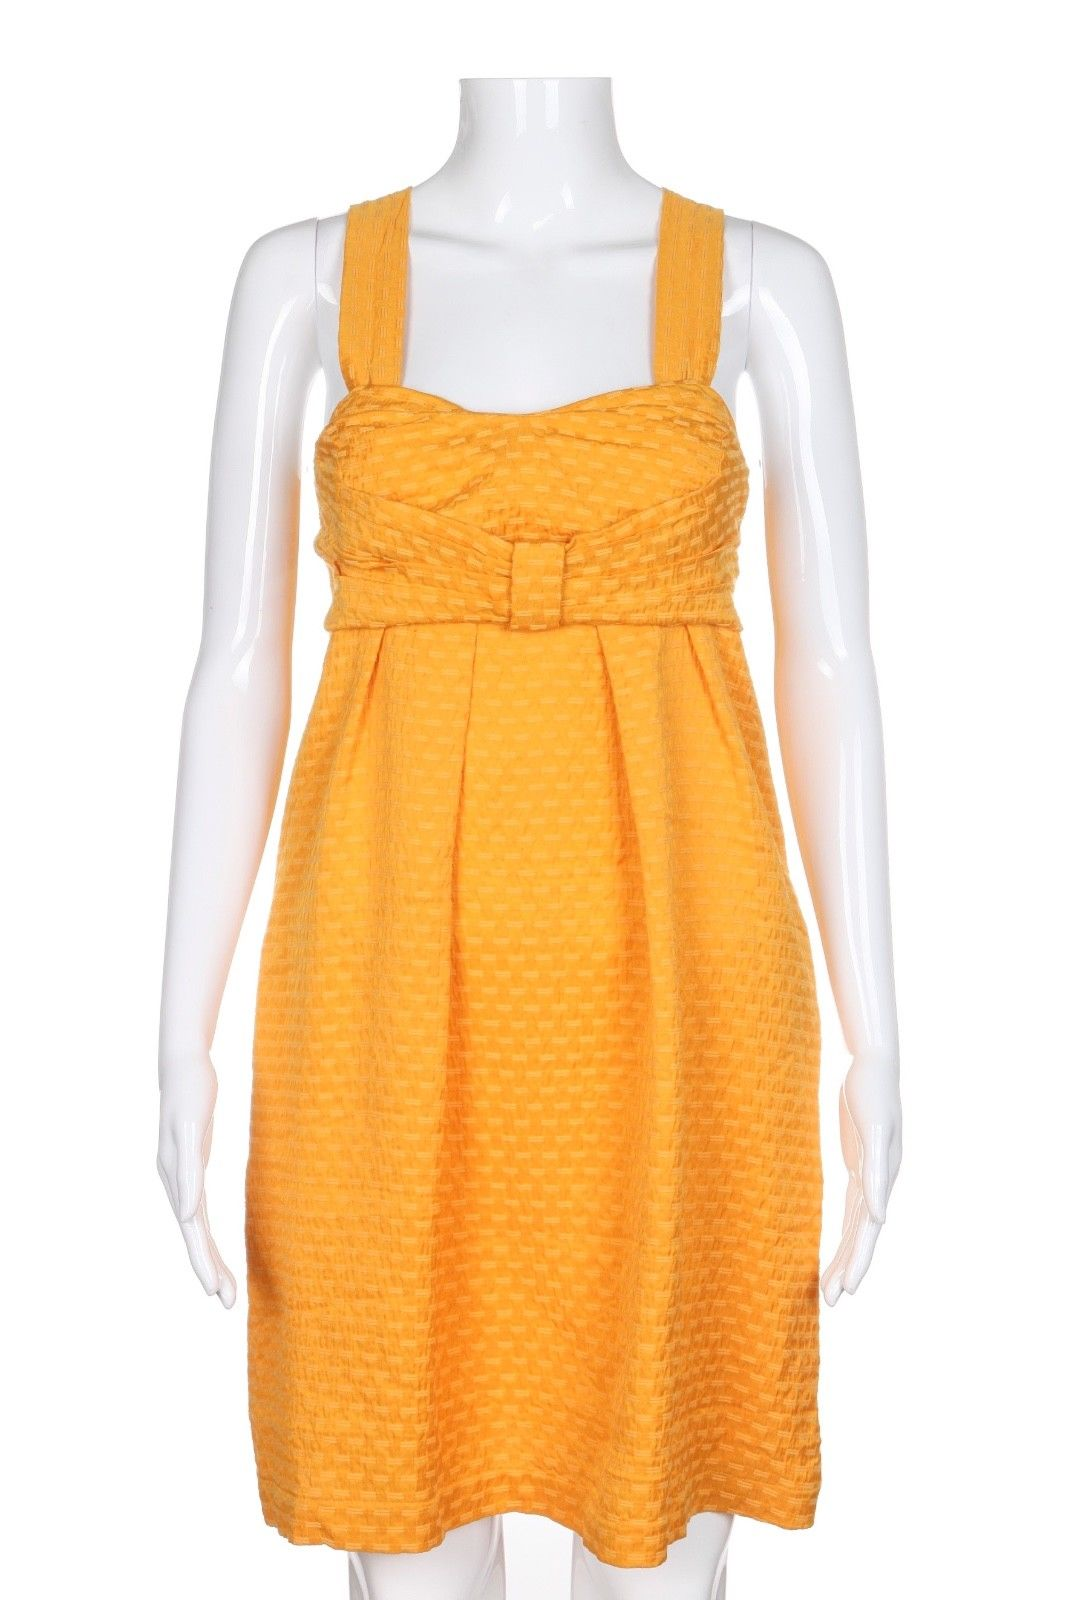 SEE BY CHLOÉ Mini Textured Cocktail Dress Size 4